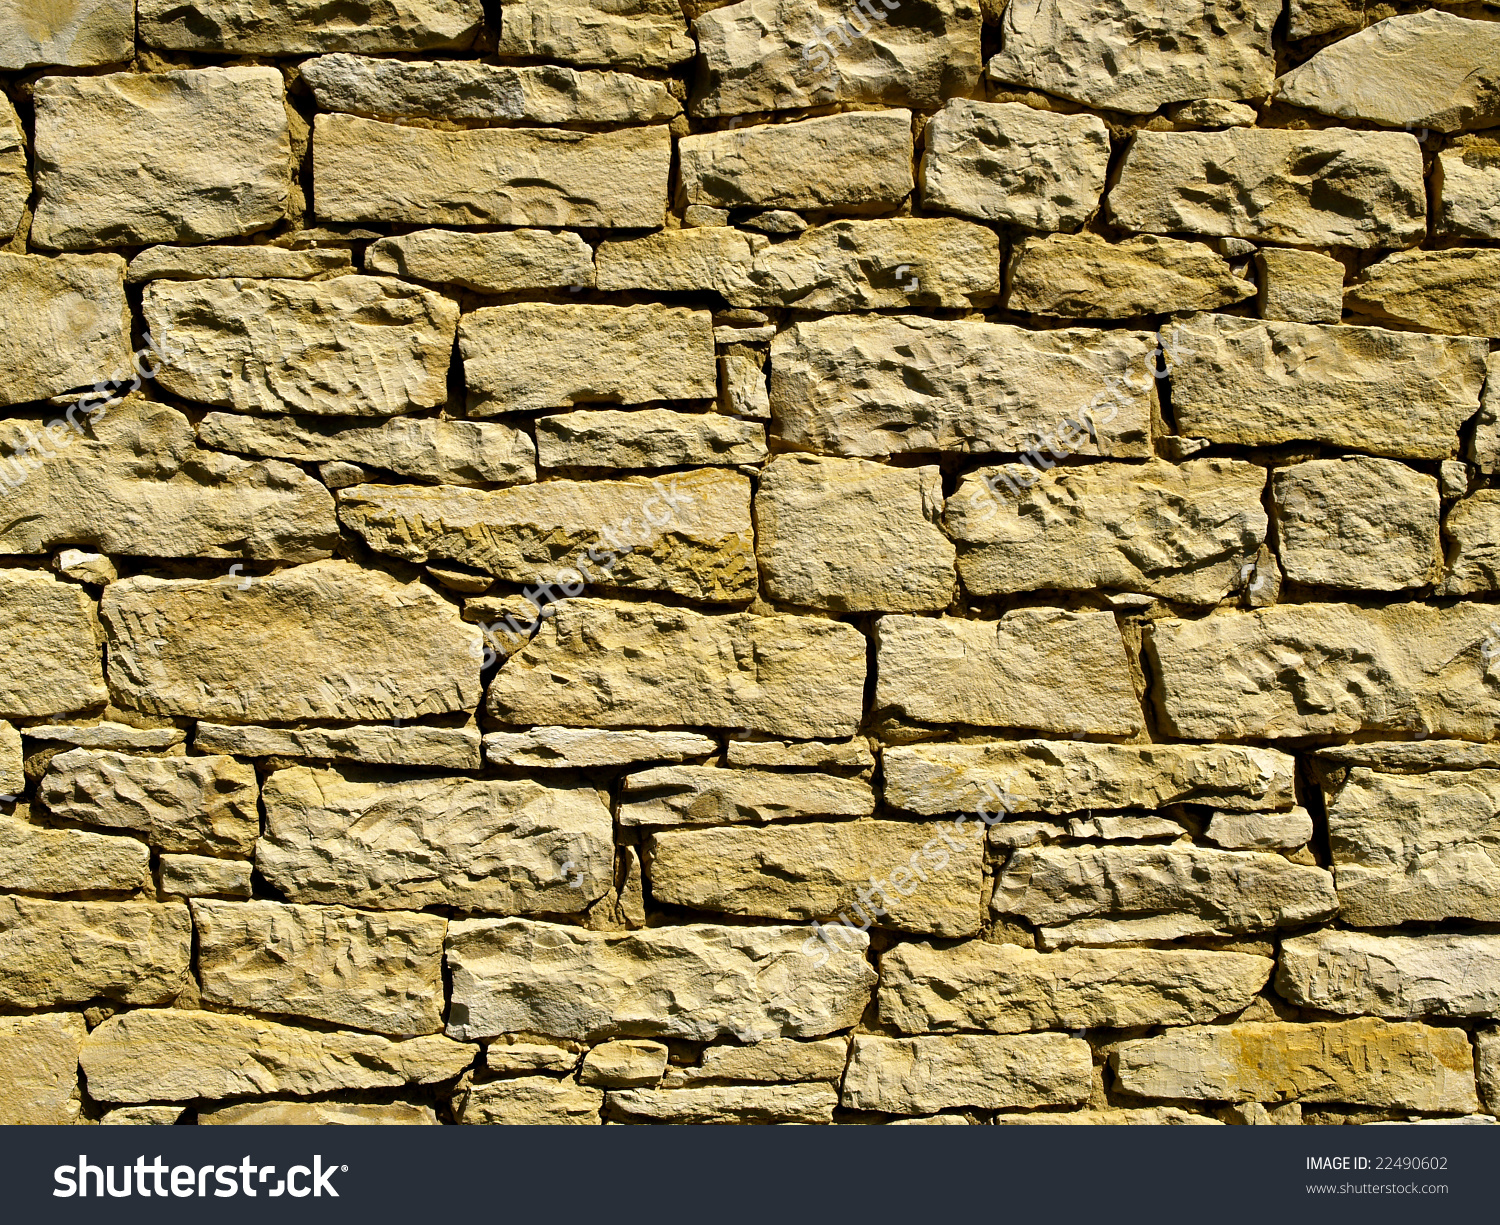 Yellow Ochre Stone Wall Made Of Marlite (Kind Of Rock) Stock Photo.